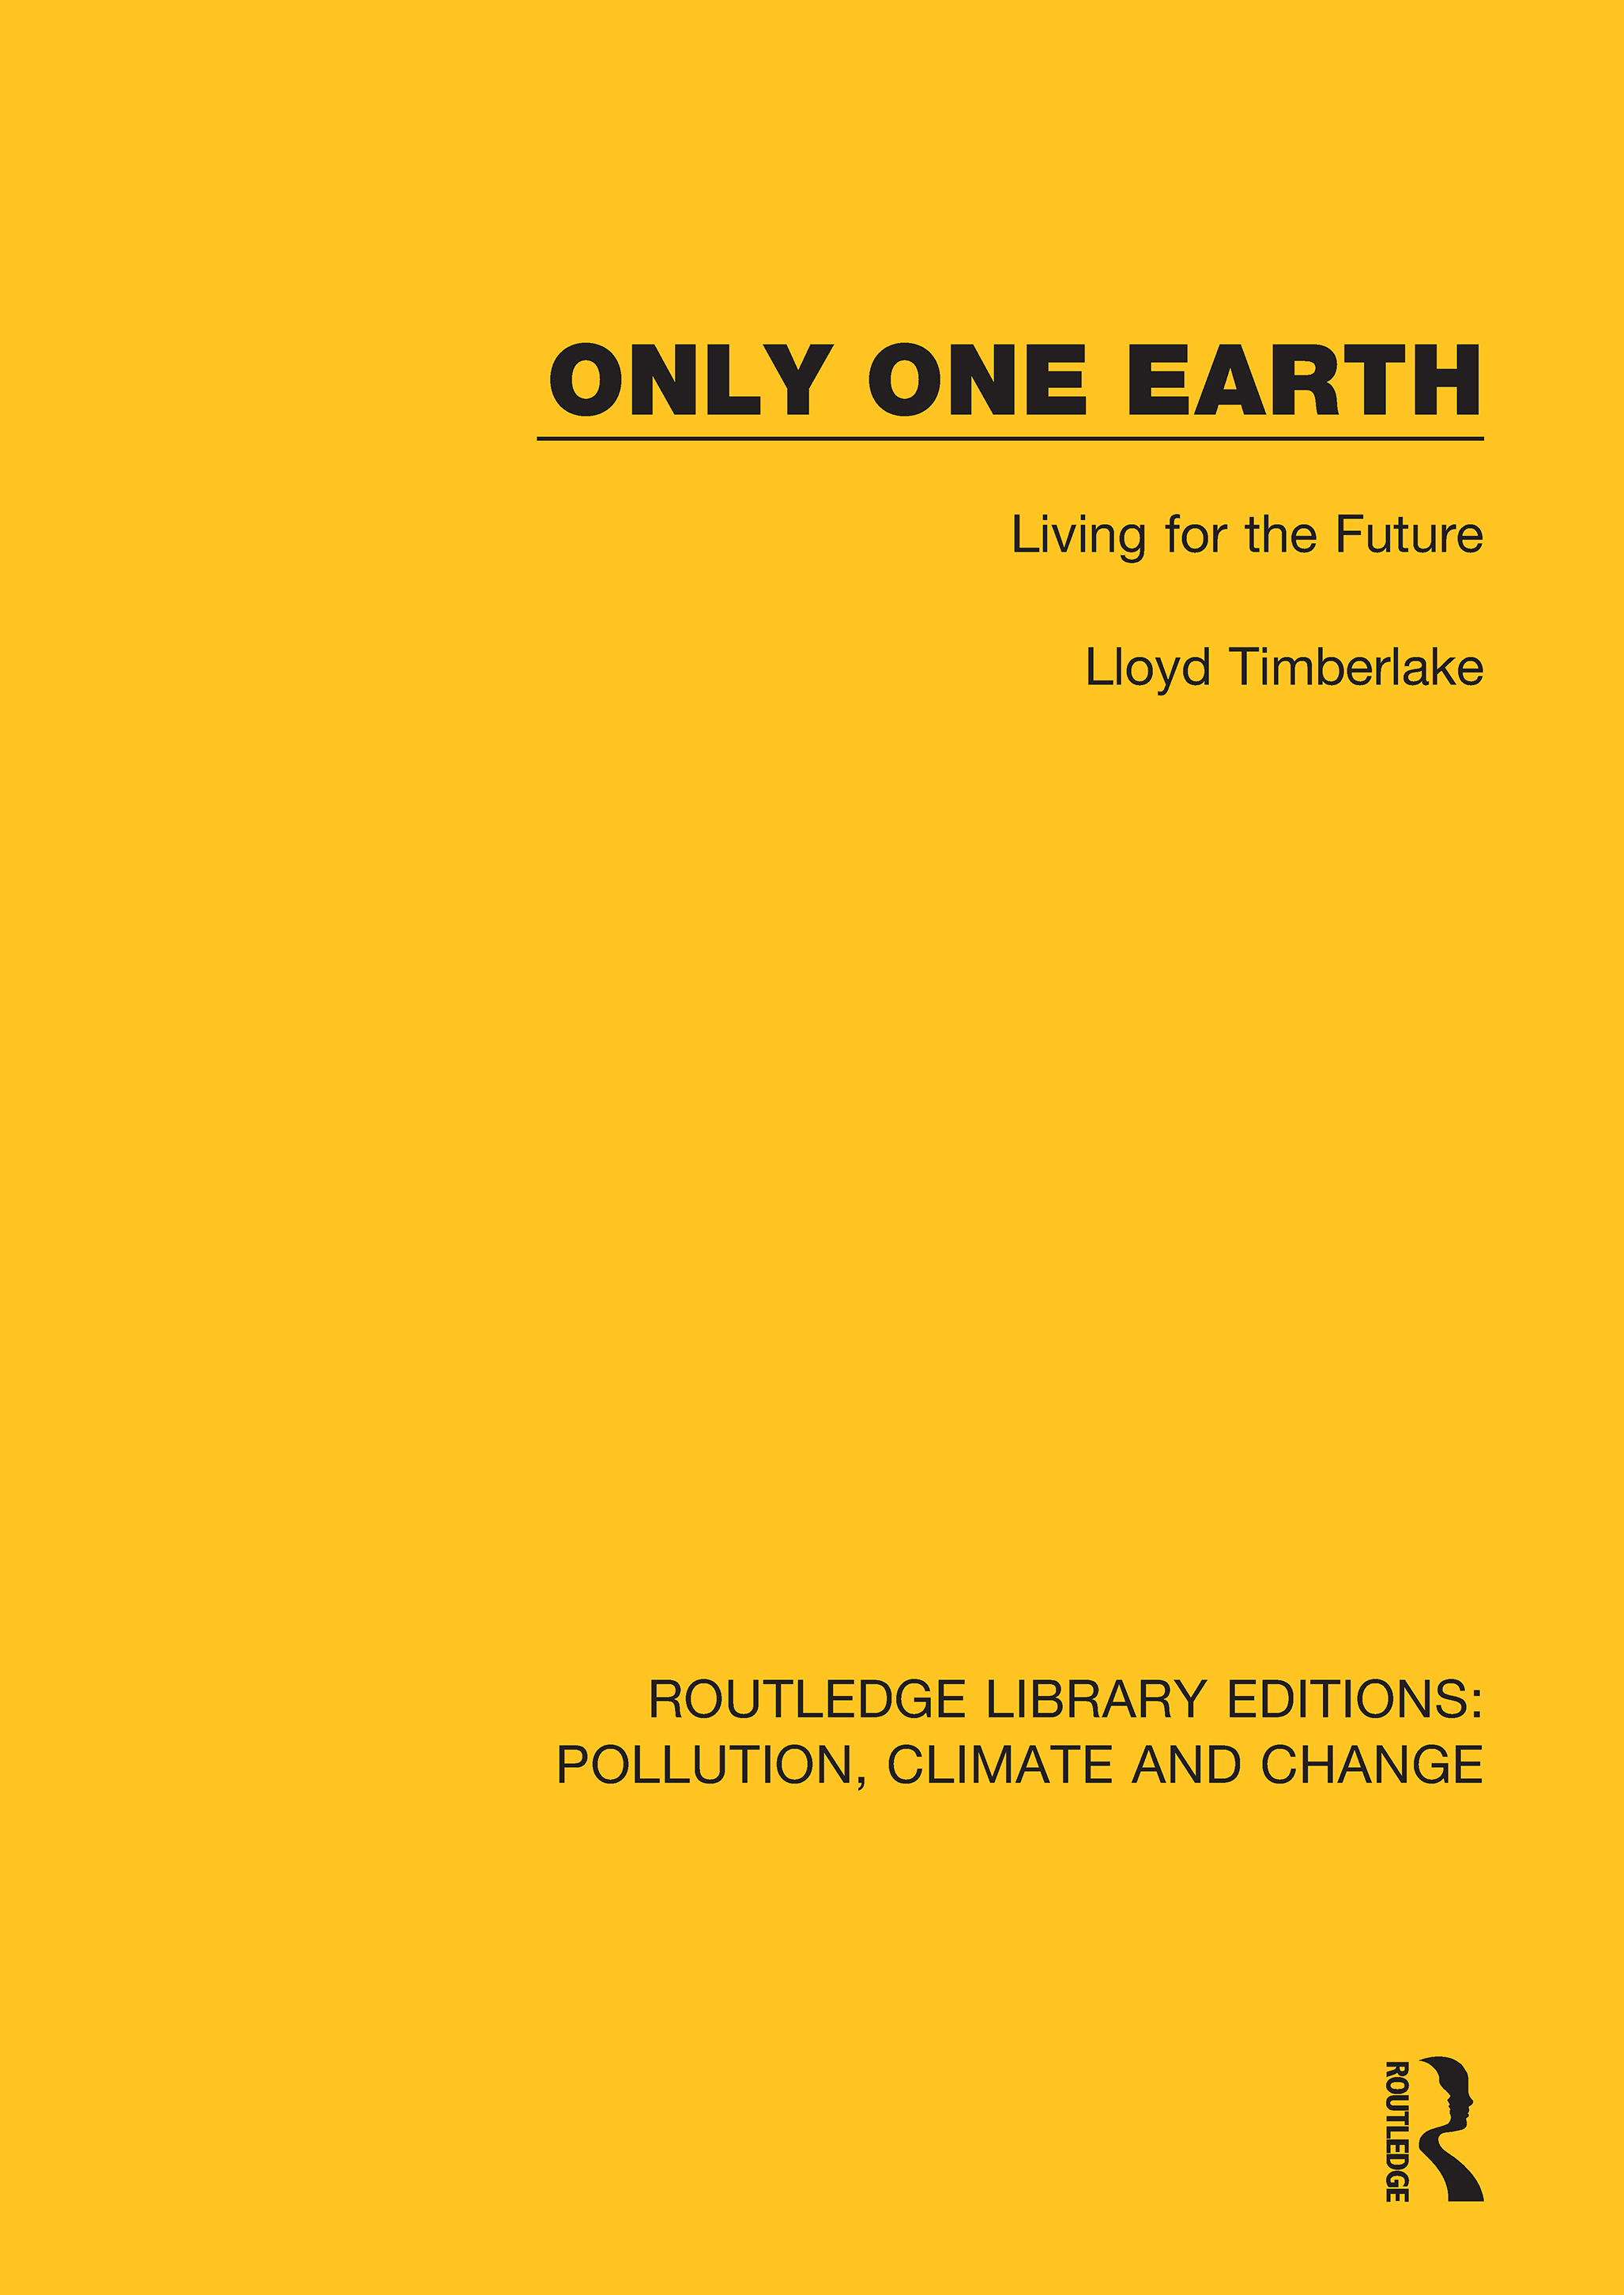 Only One Earth: Living for the Future book cover